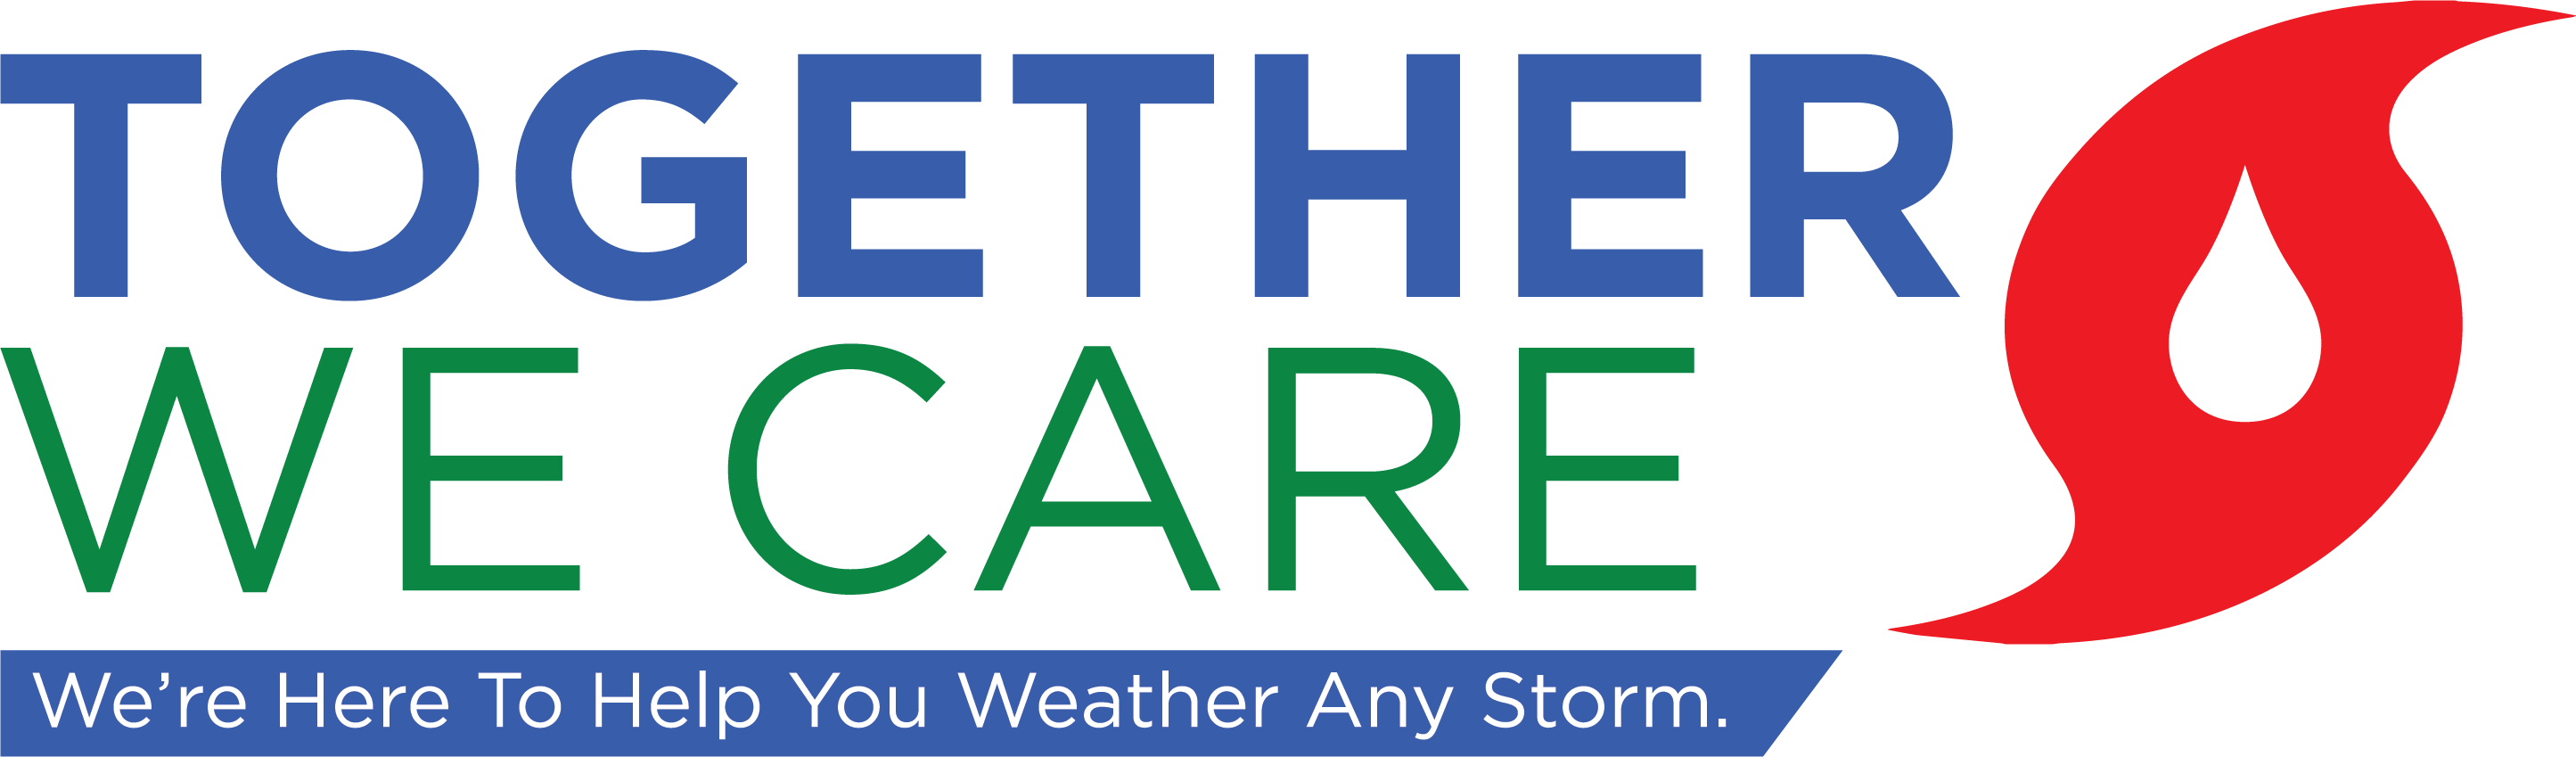 together_we_care_logo-01 (002)